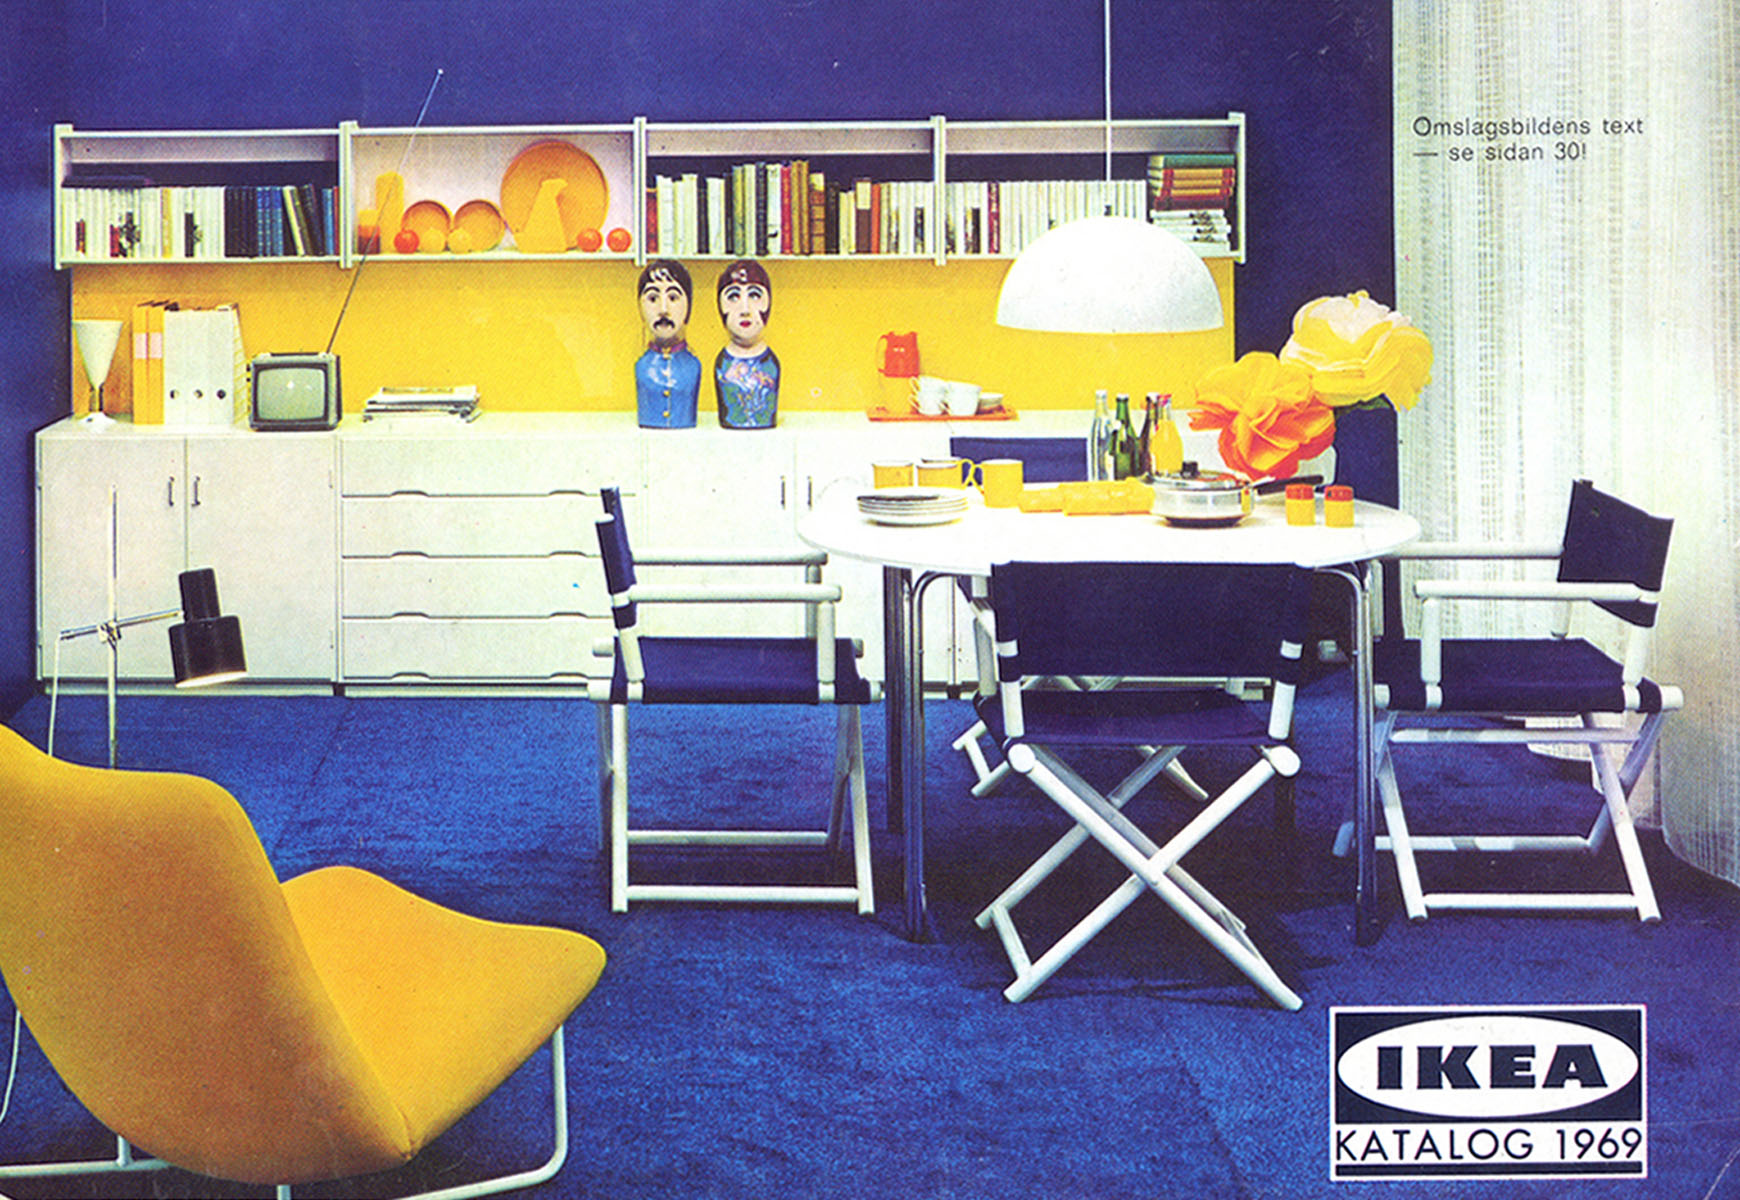 Catalogue Ikea Ikea Catalog Covers From 1951 2018